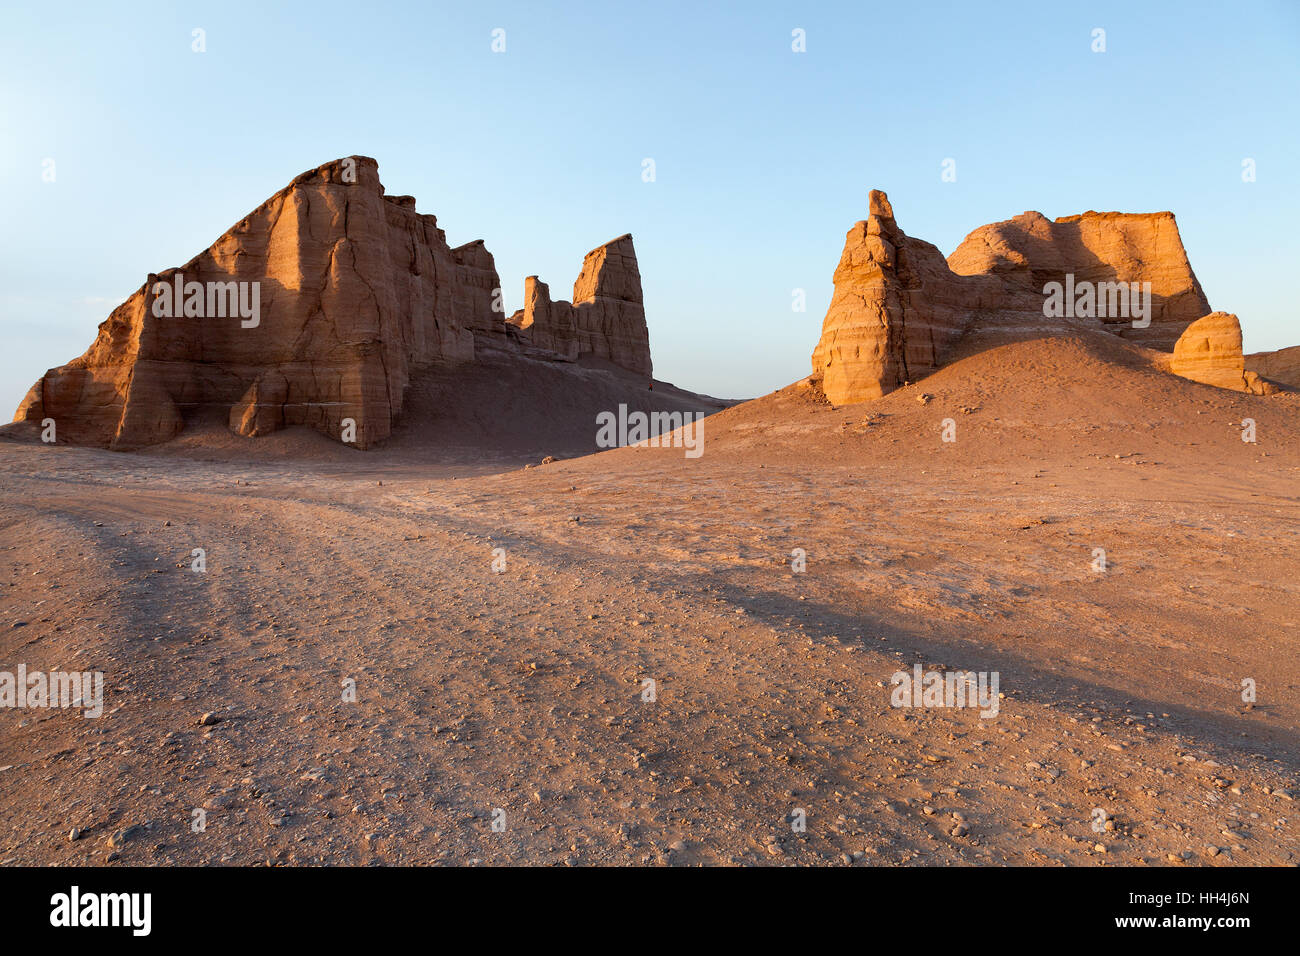 Dasht-e Loot at sunset, a large desert in south eastern Iran. - Stock Image